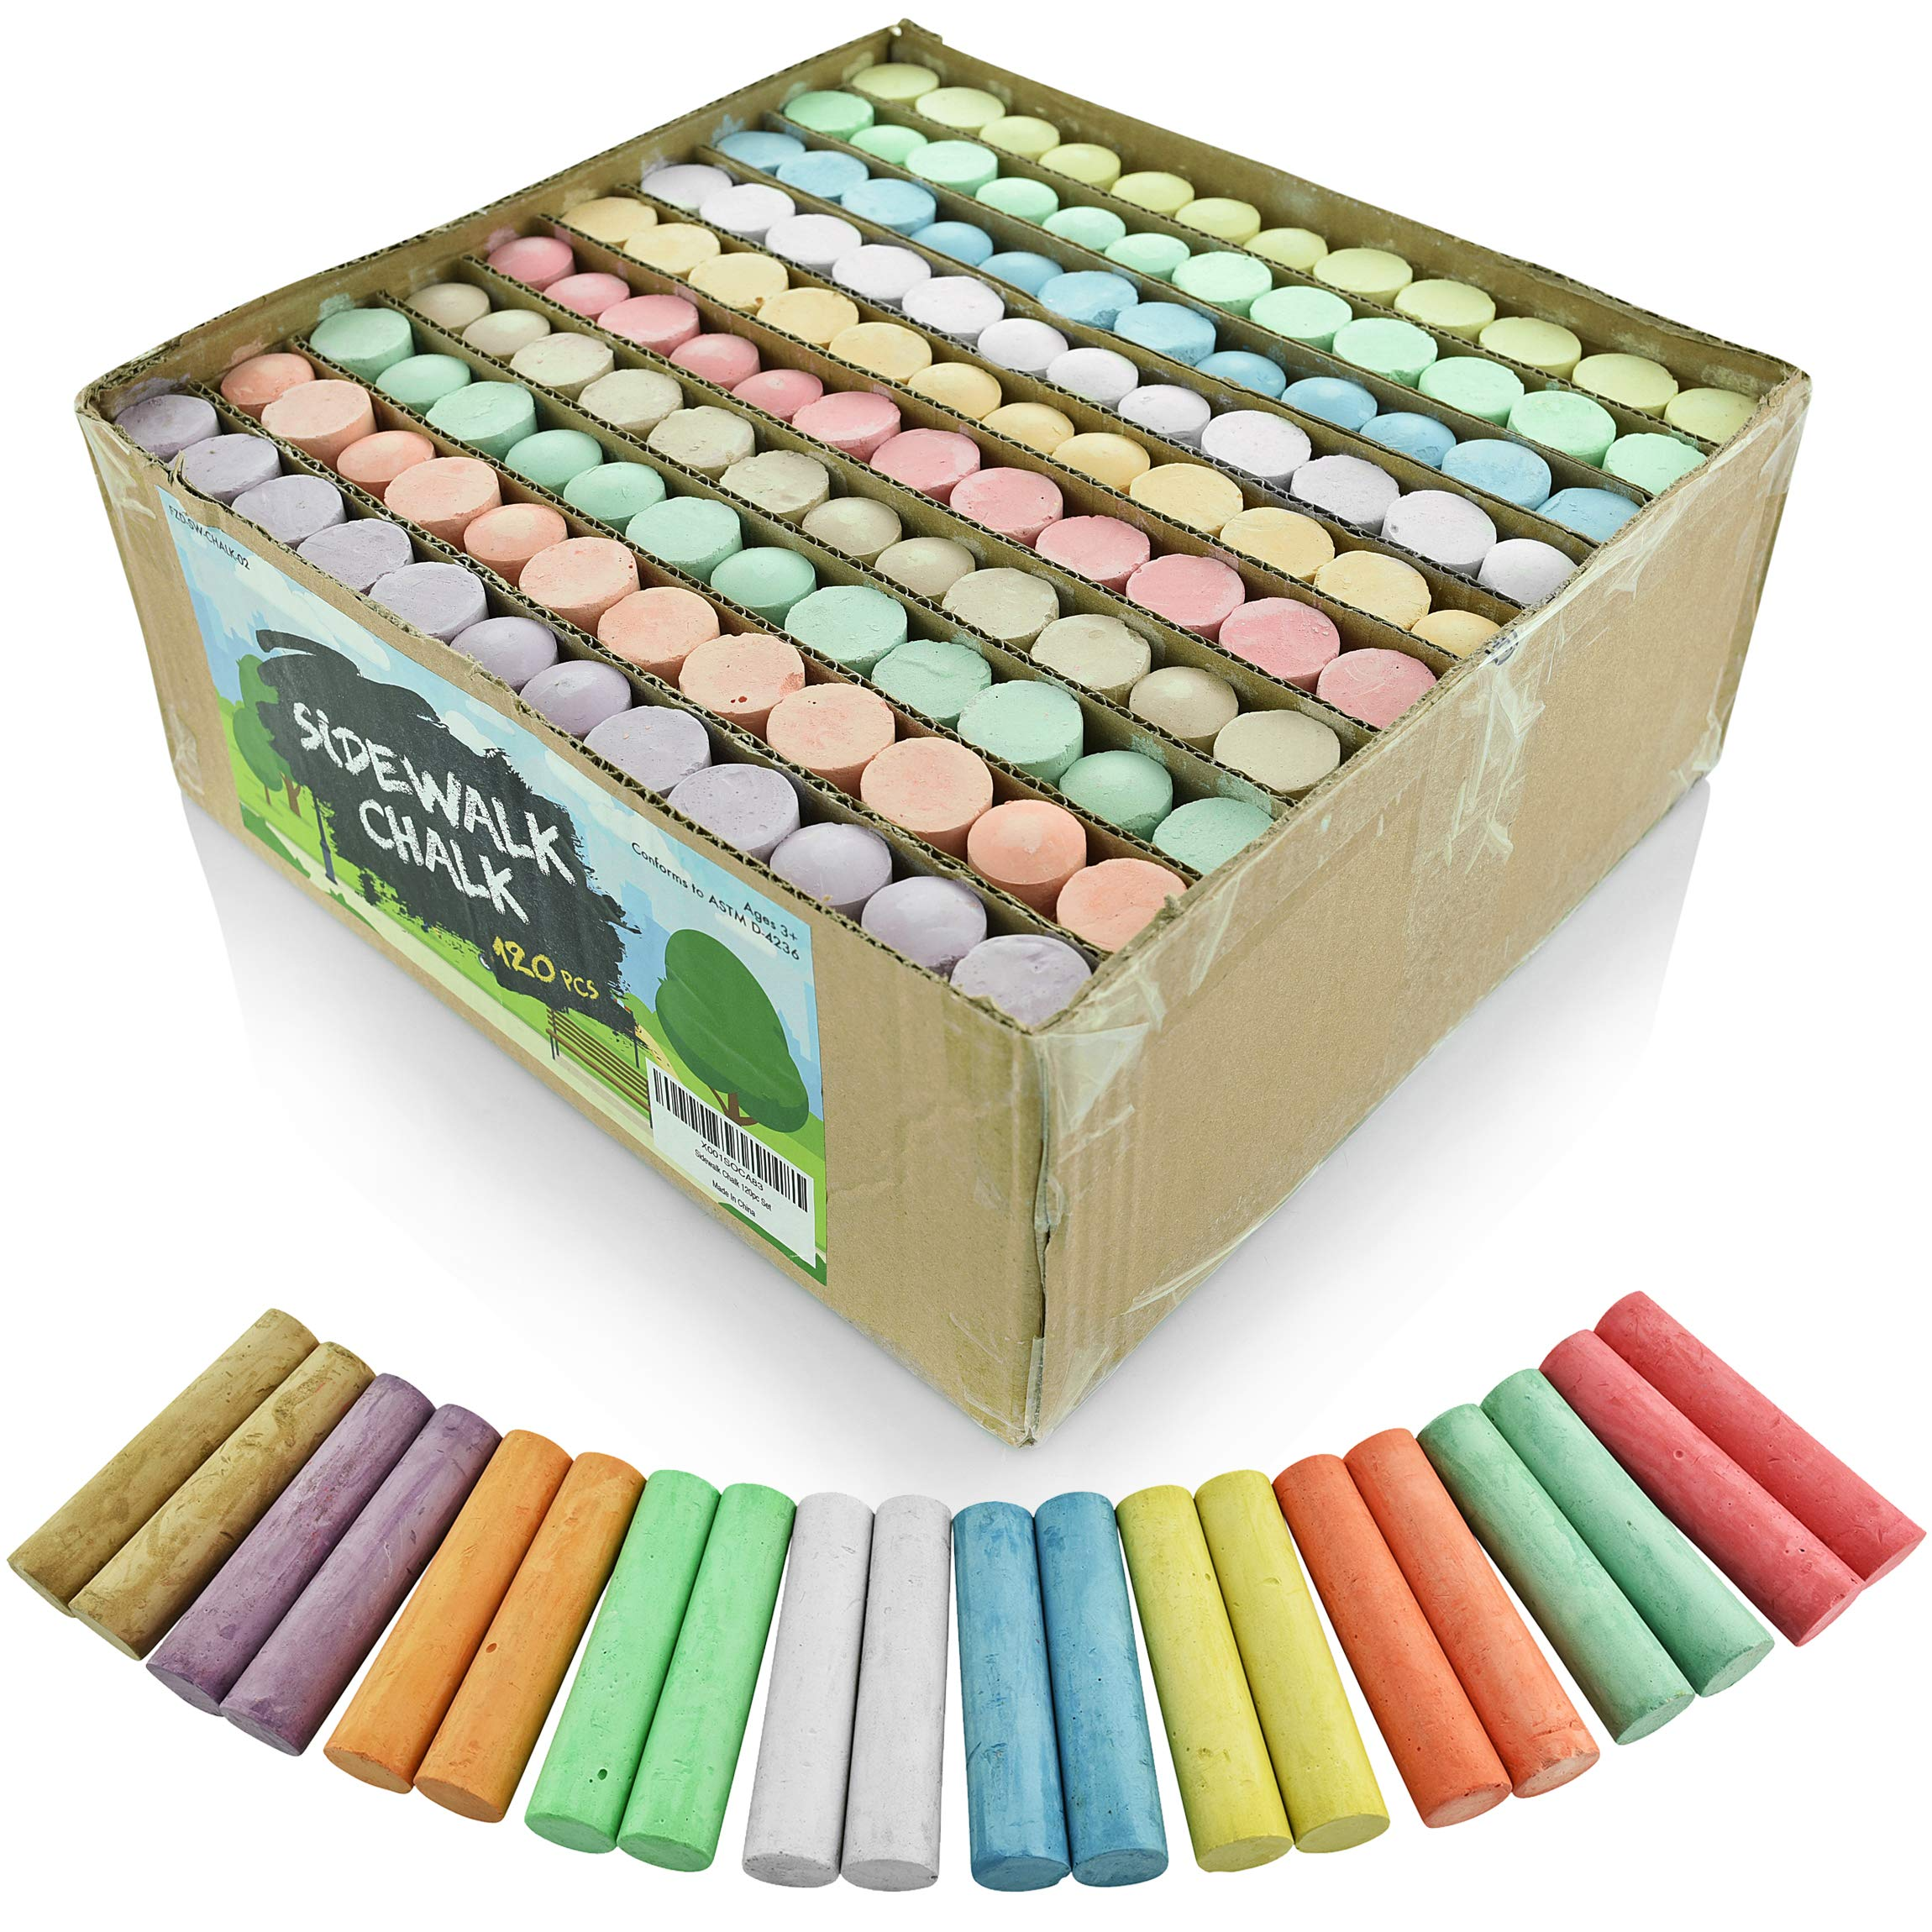 Sidewalk Chalk Set - Pack of 120 Multi-Color Jumbo Street Chalks - 10 Bright & Cheerful Colors - Nontoxic, Washable Tapered Chalks for Teachers and Schools - 1 x 4 Inches by Fat Zebra Designs